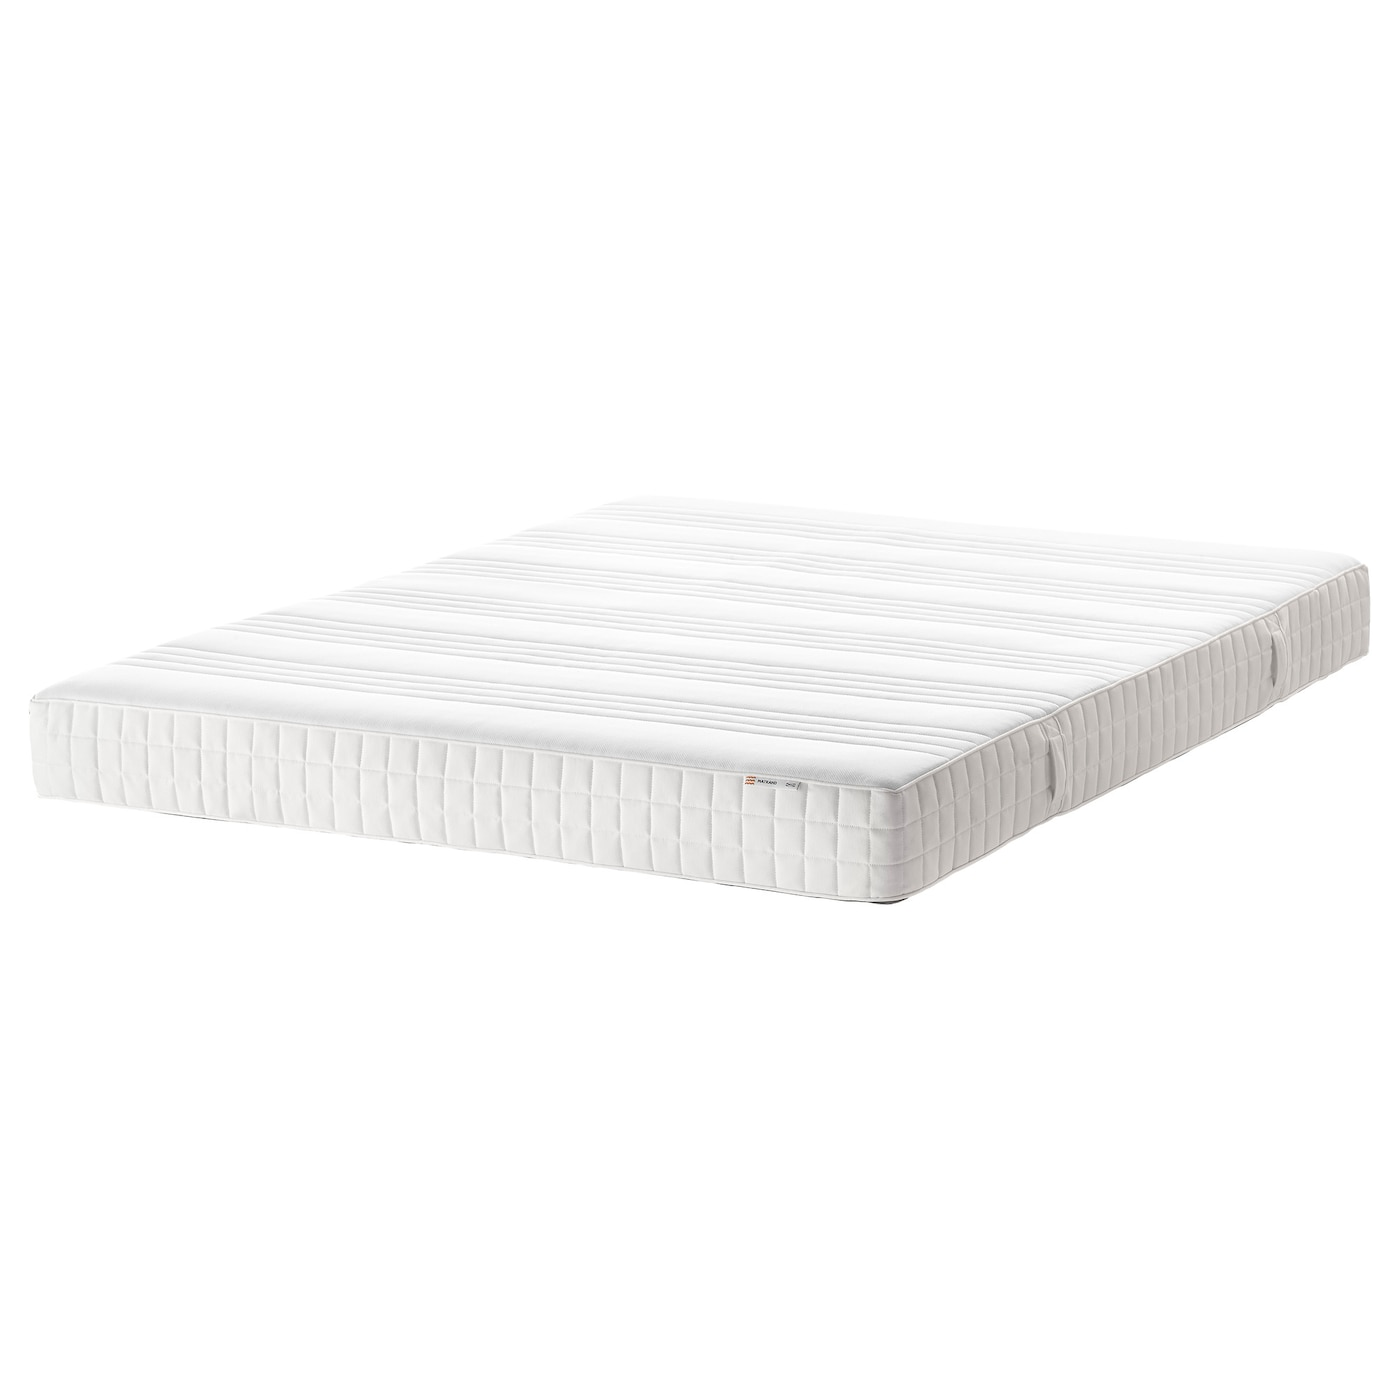 matrand matelas latex mi ferme blanc 140 x 200 cm ikea. Black Bedroom Furniture Sets. Home Design Ideas